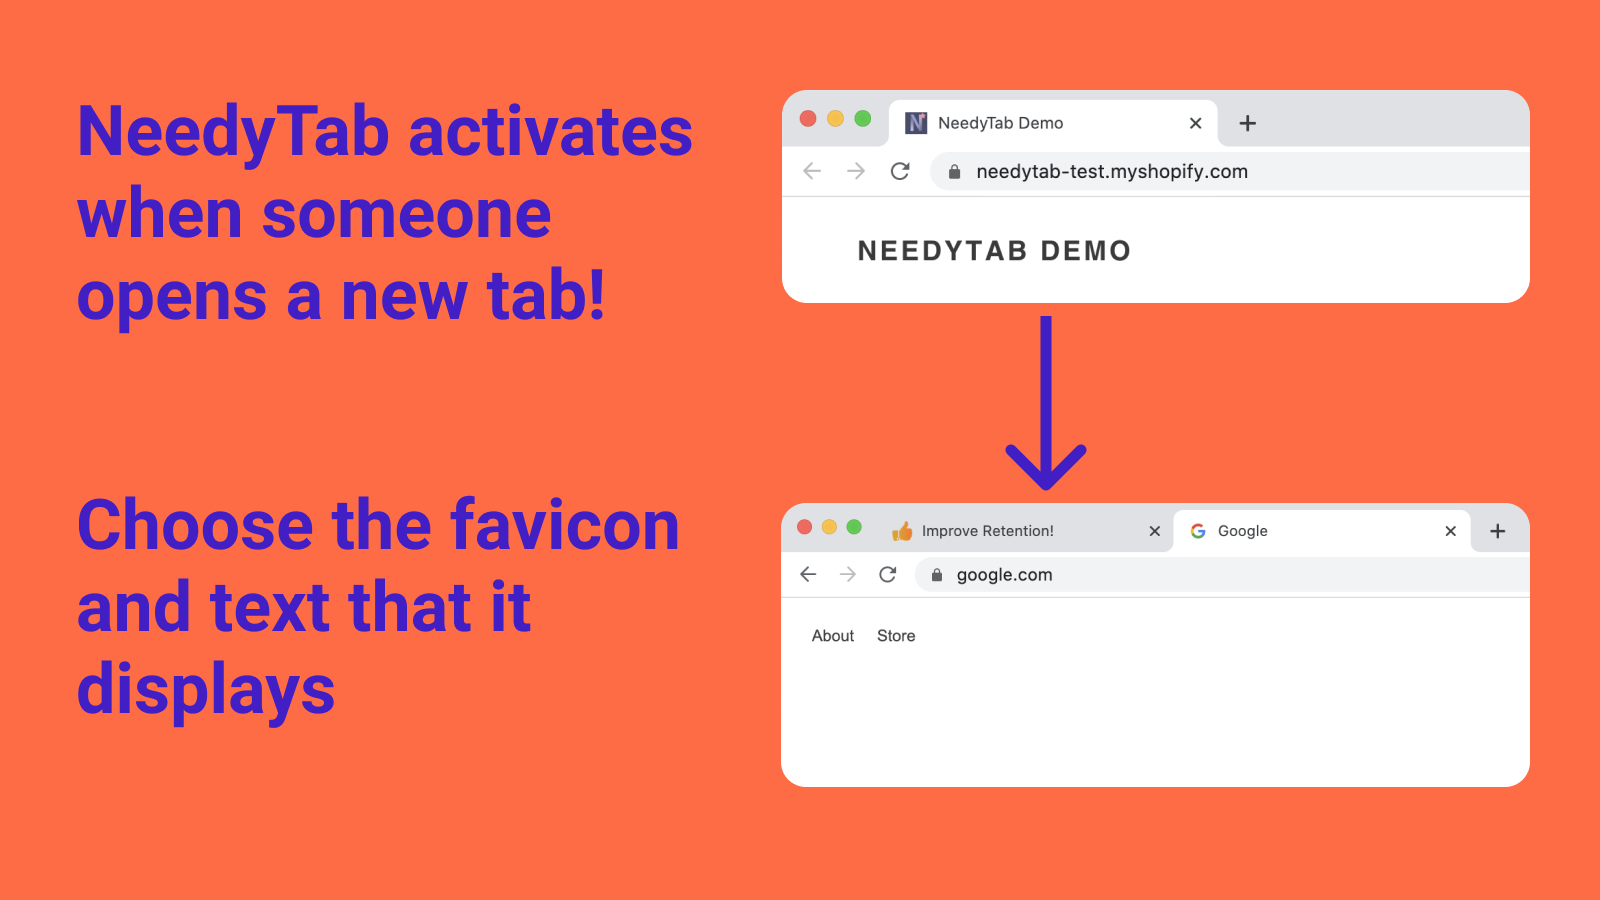 Before and after a new tab is opened